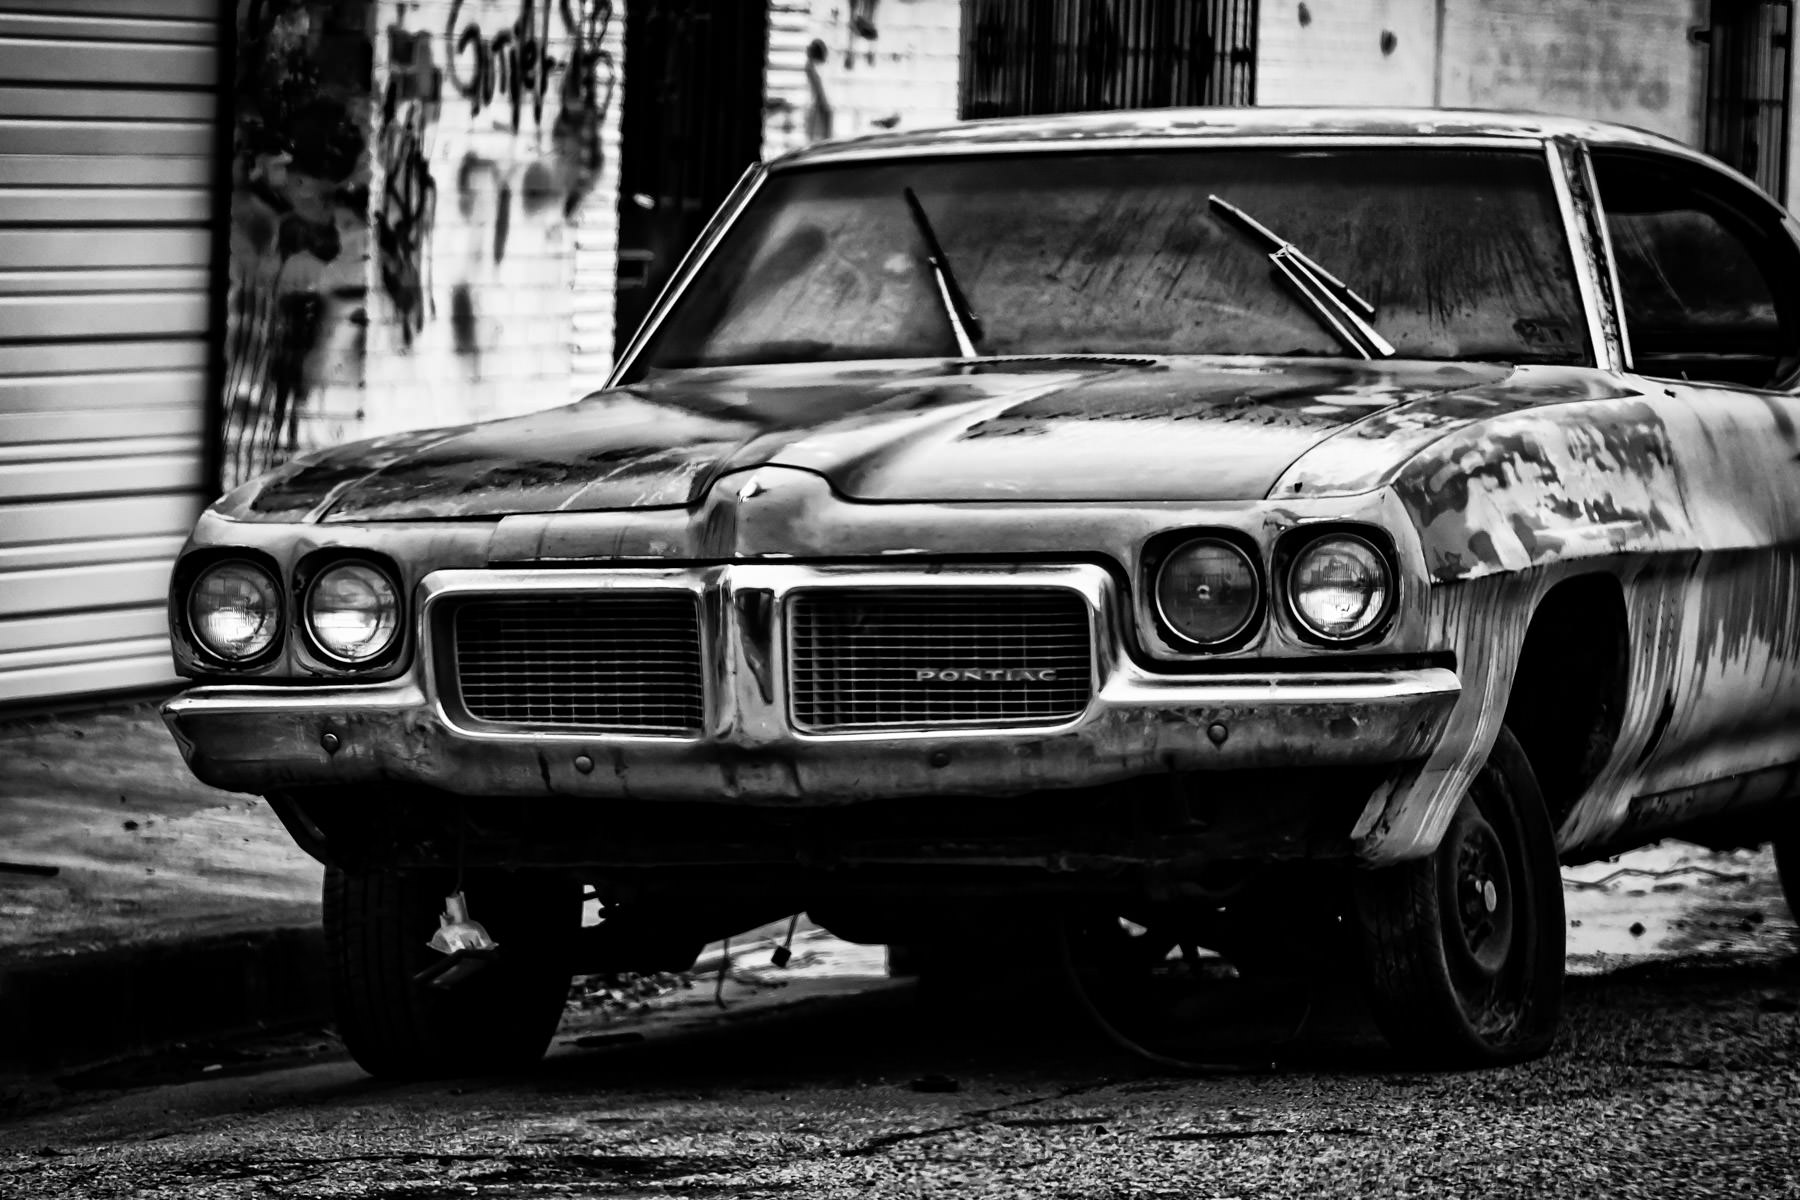 An abandoned, broken-down Pontiac spotted somewhere in north Tyler, Texas.